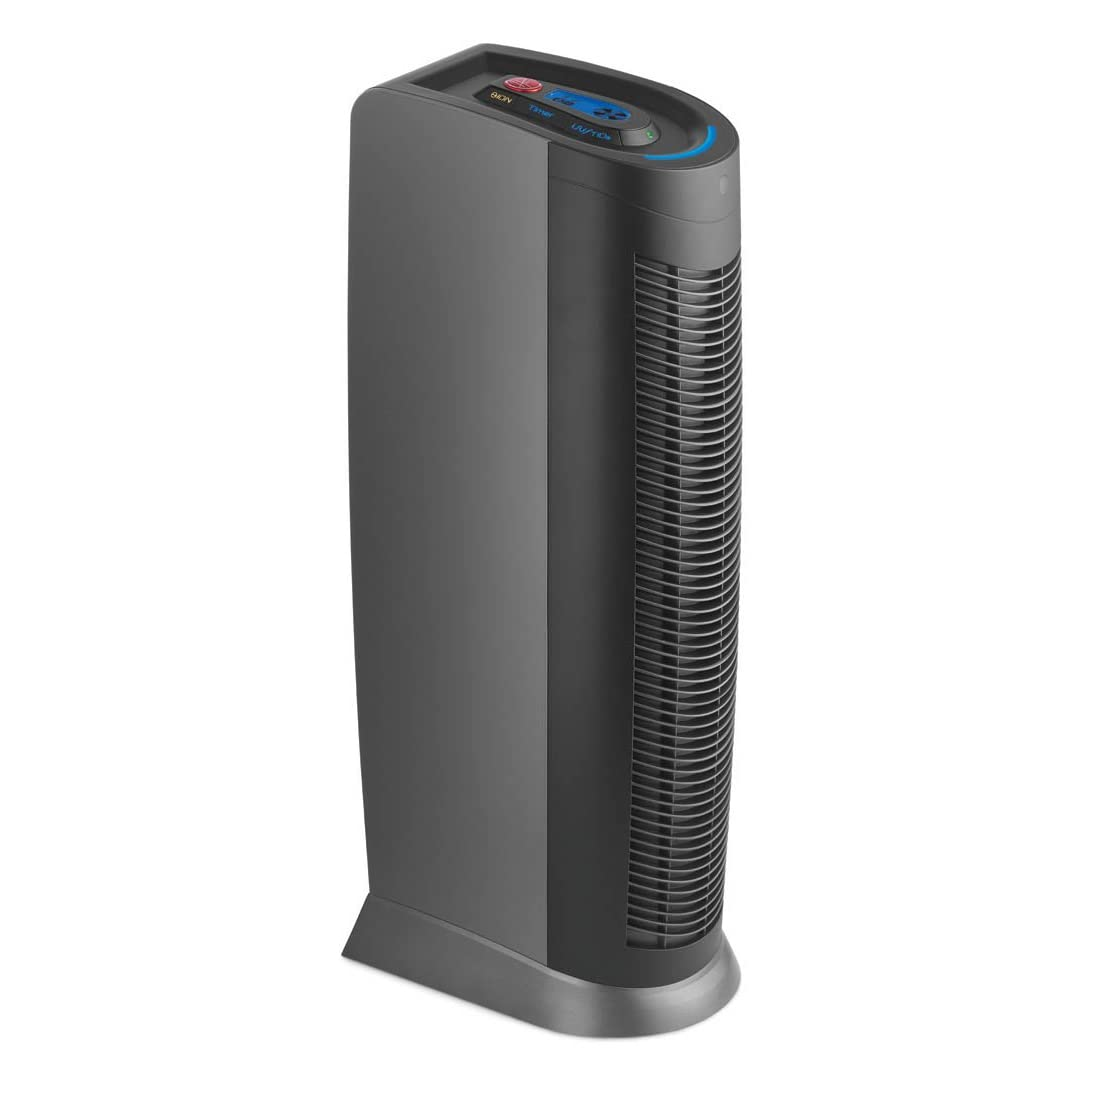 Amazon Gold Box Daily Deal: Up To 48% OFF Hoover Air Purifiers with HEPA and TiO2 Technology